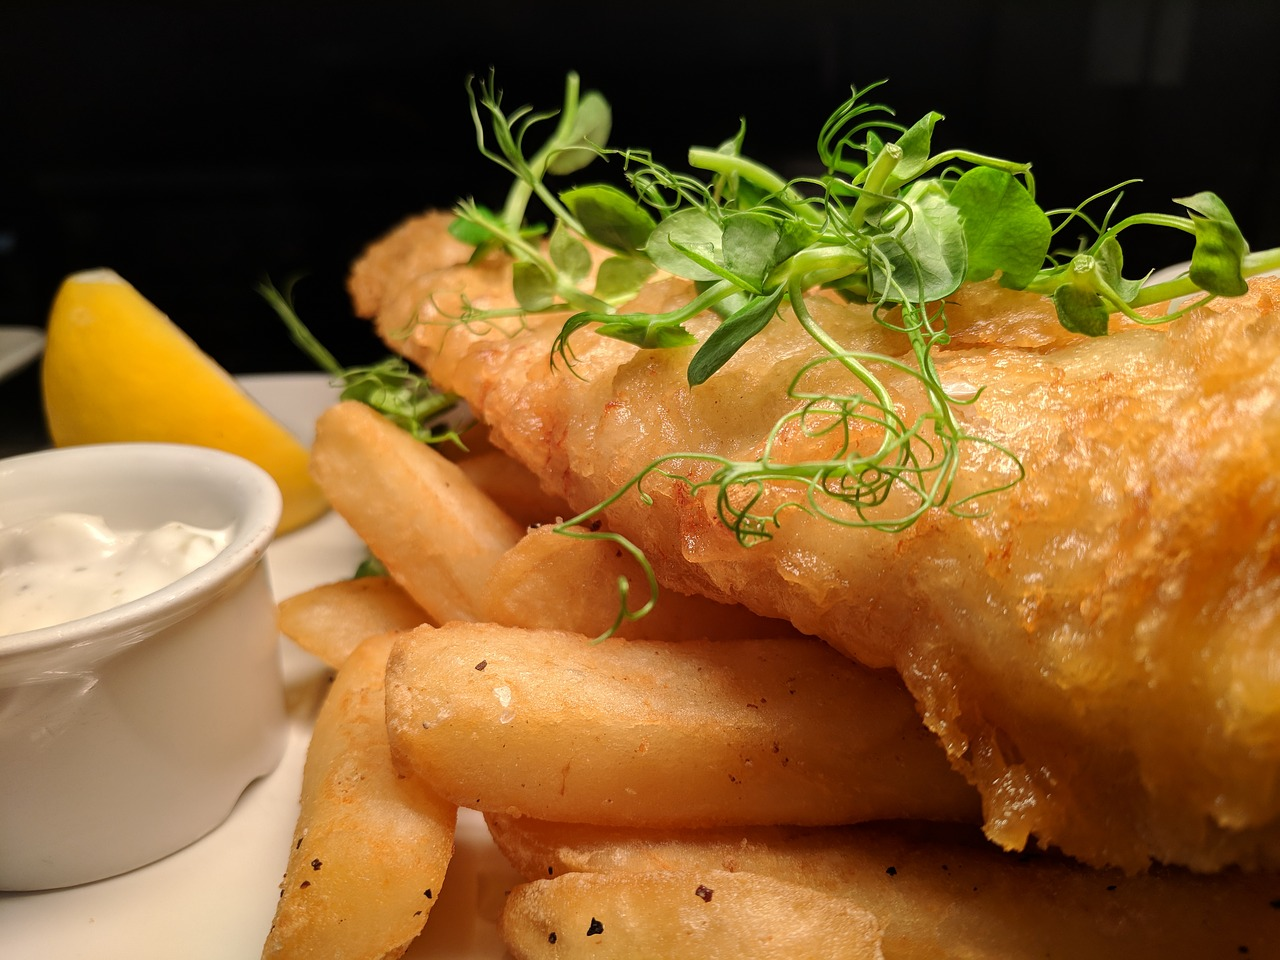 fish-and-chips-3591073_1280